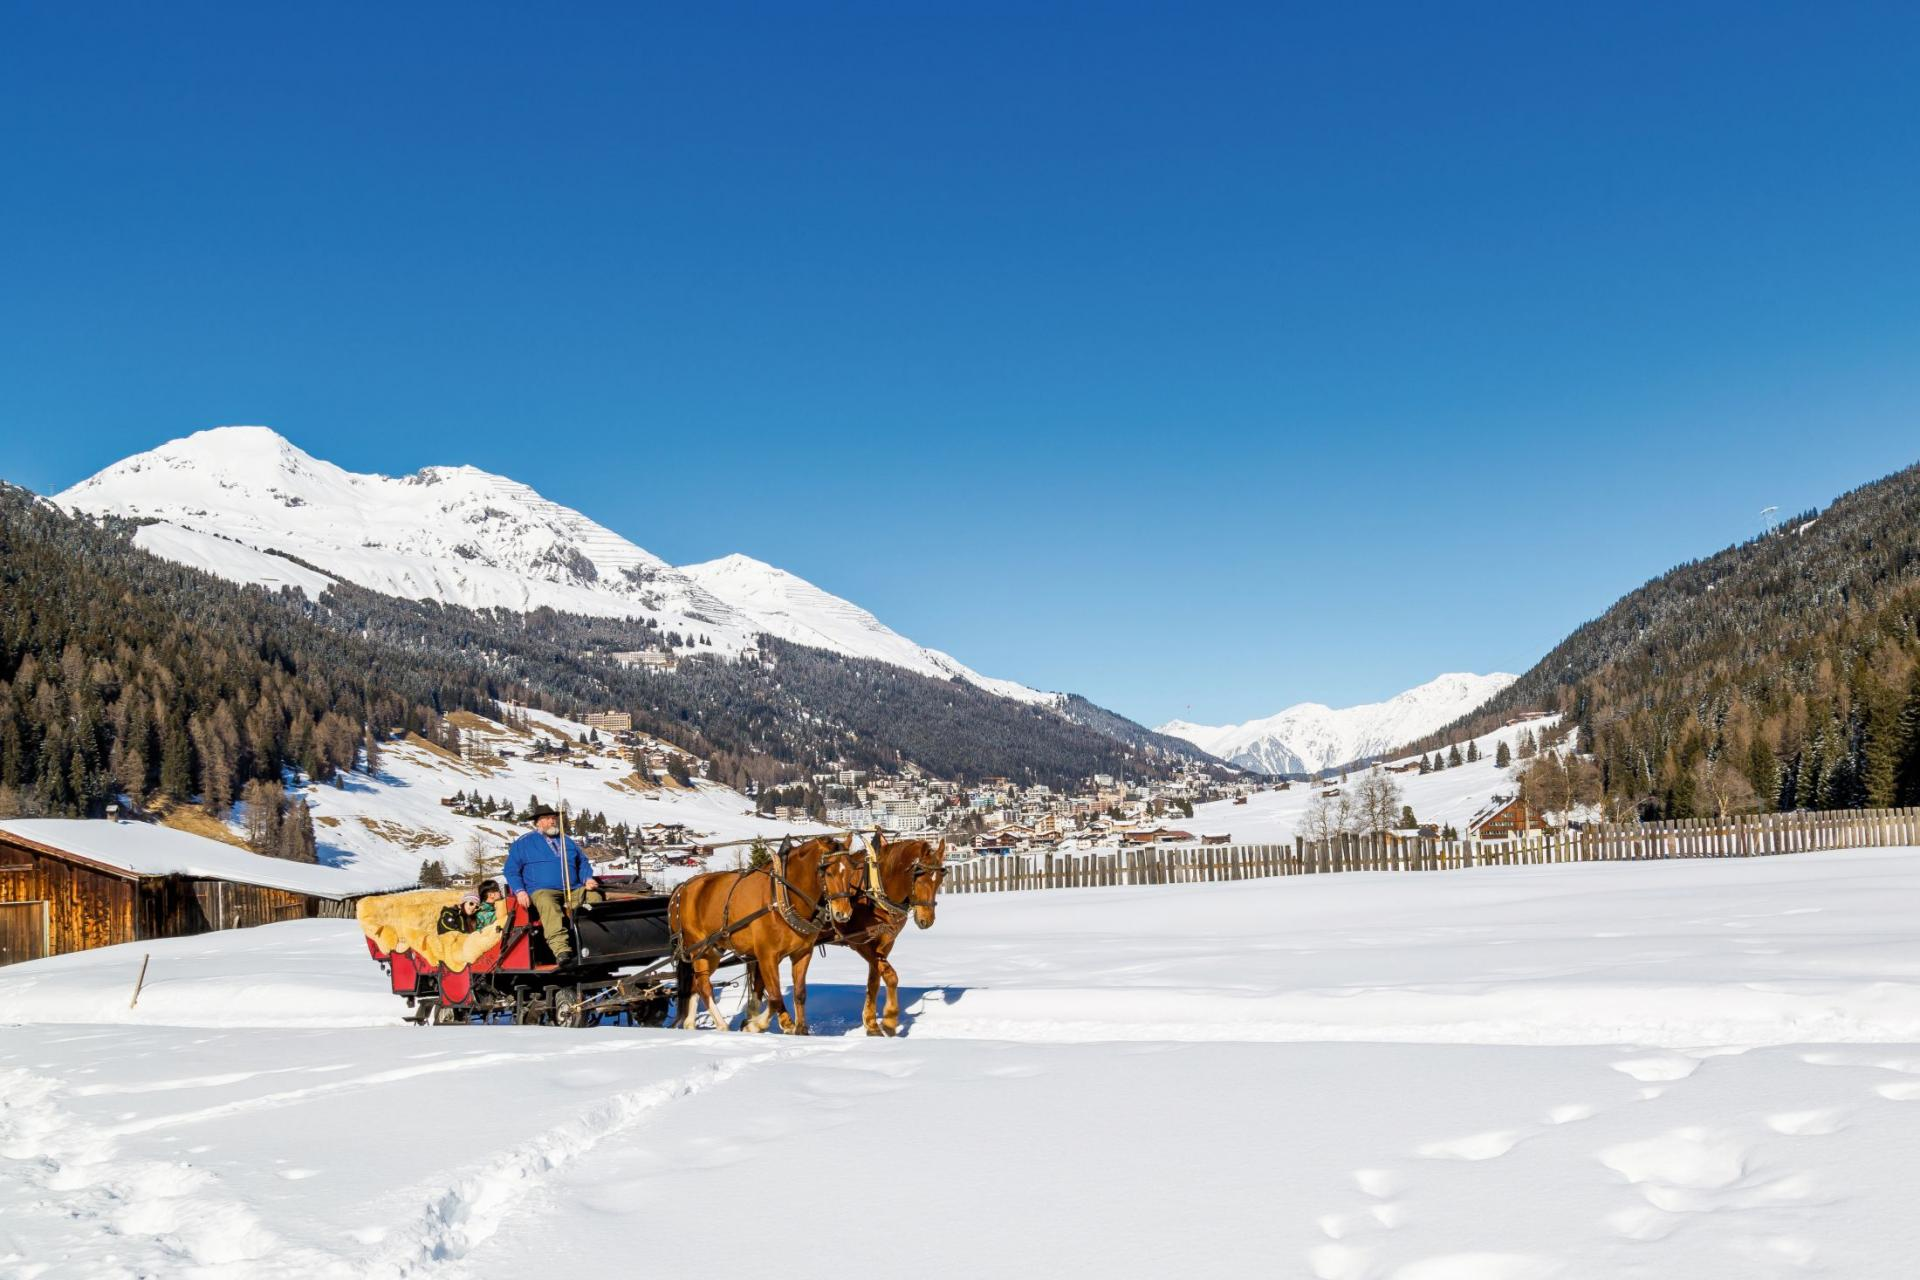 Winter in Klosters